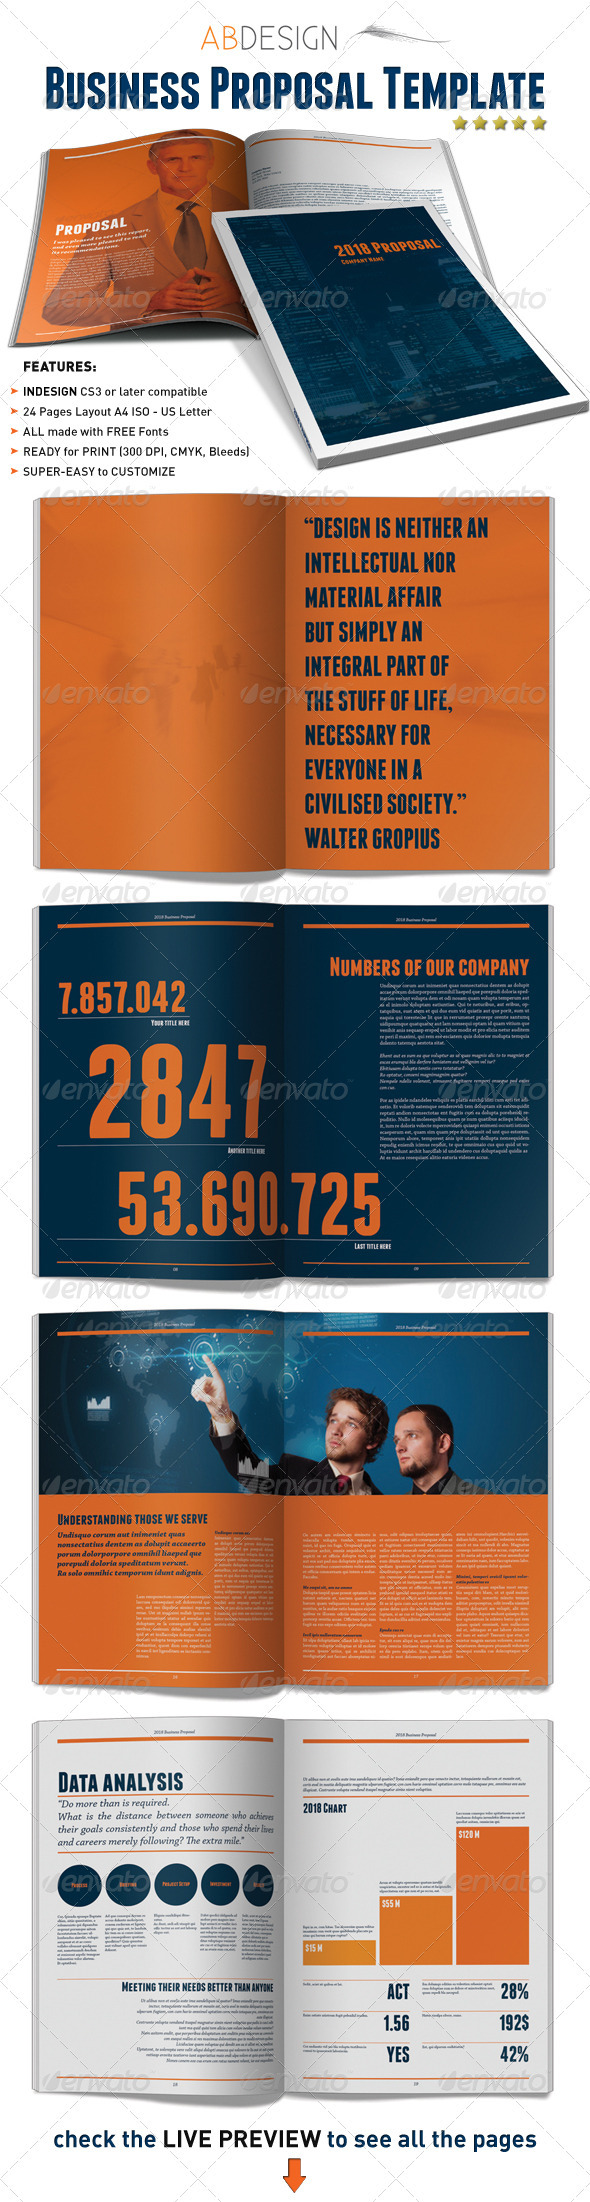 GraphicRiver Business Proposal Indesign Template 2035514